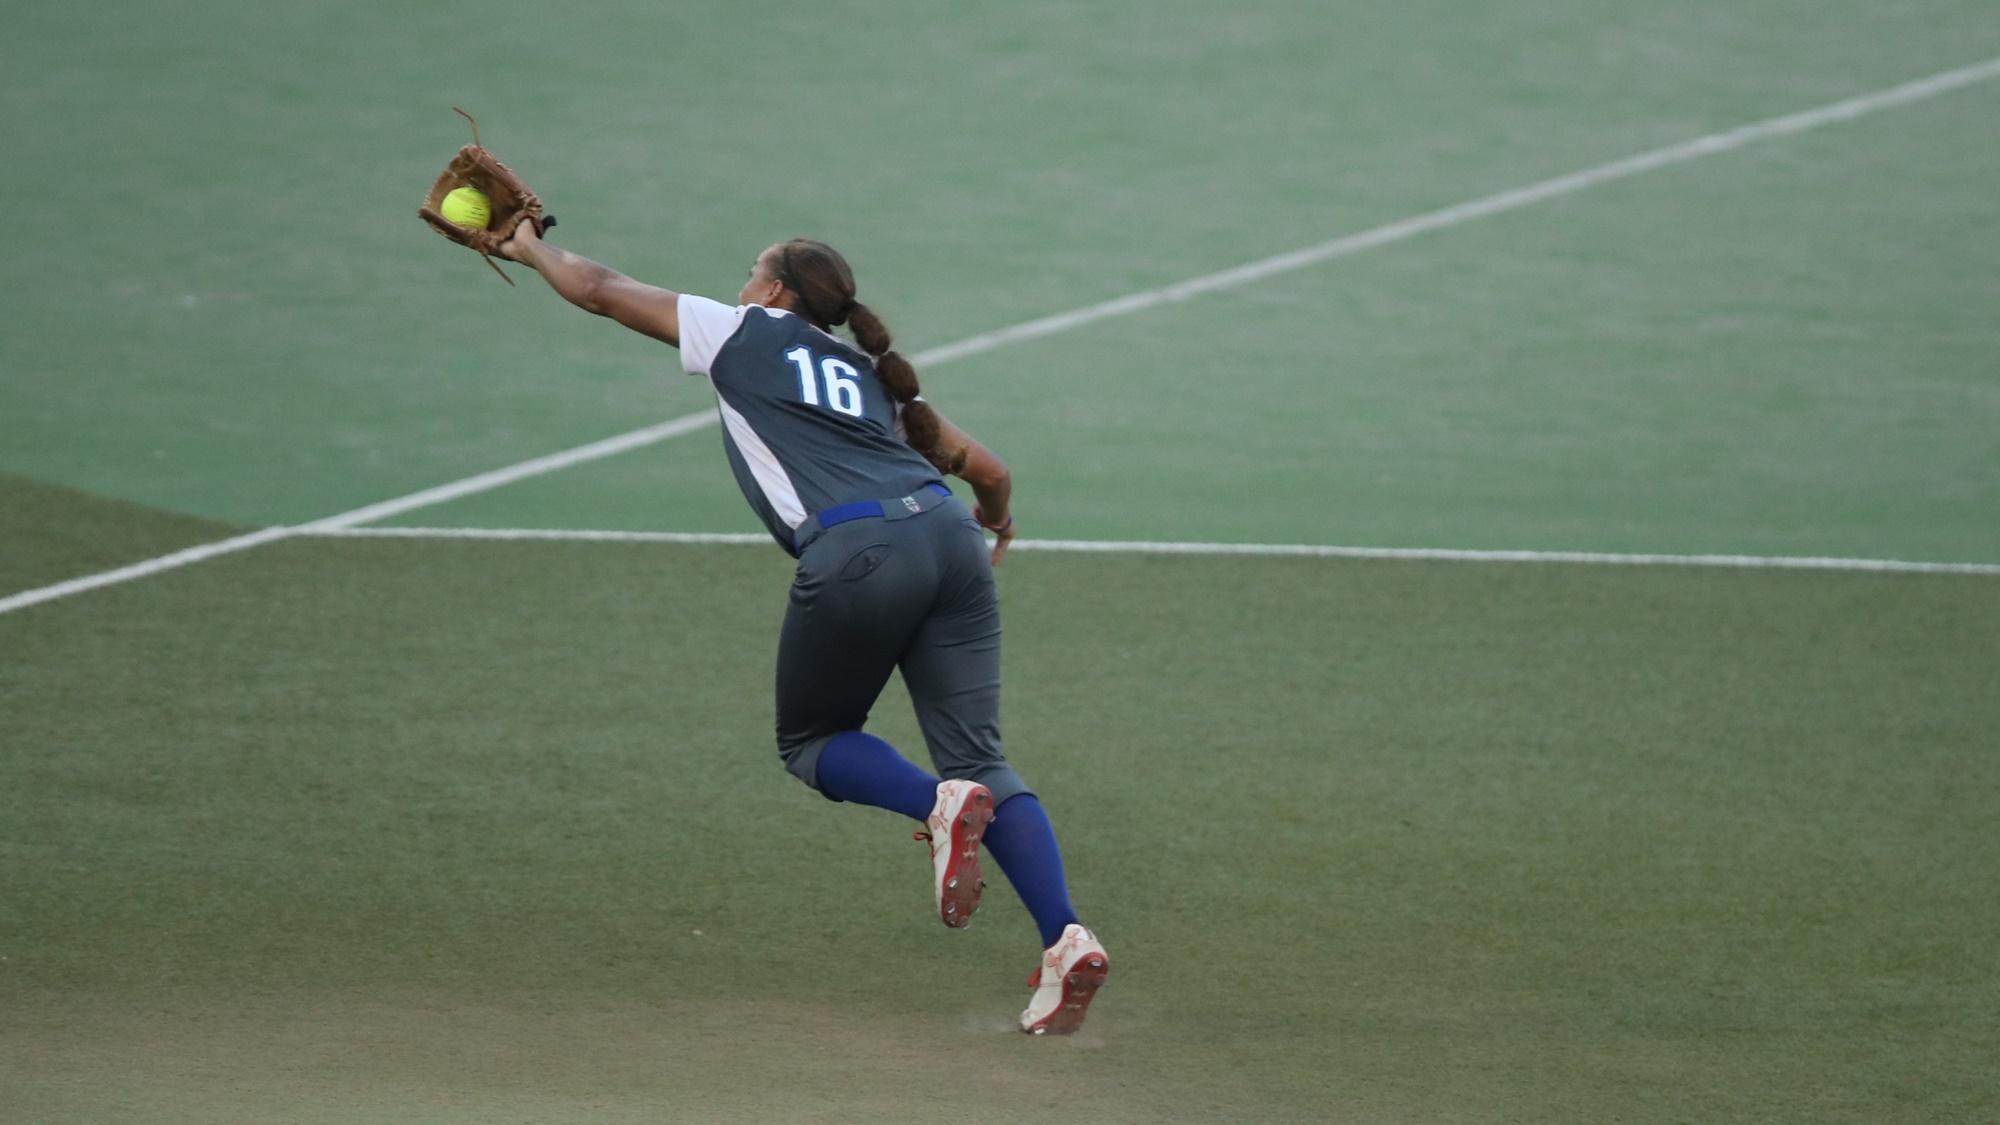 Quiana Diaz Makes a good running catch against Philippines